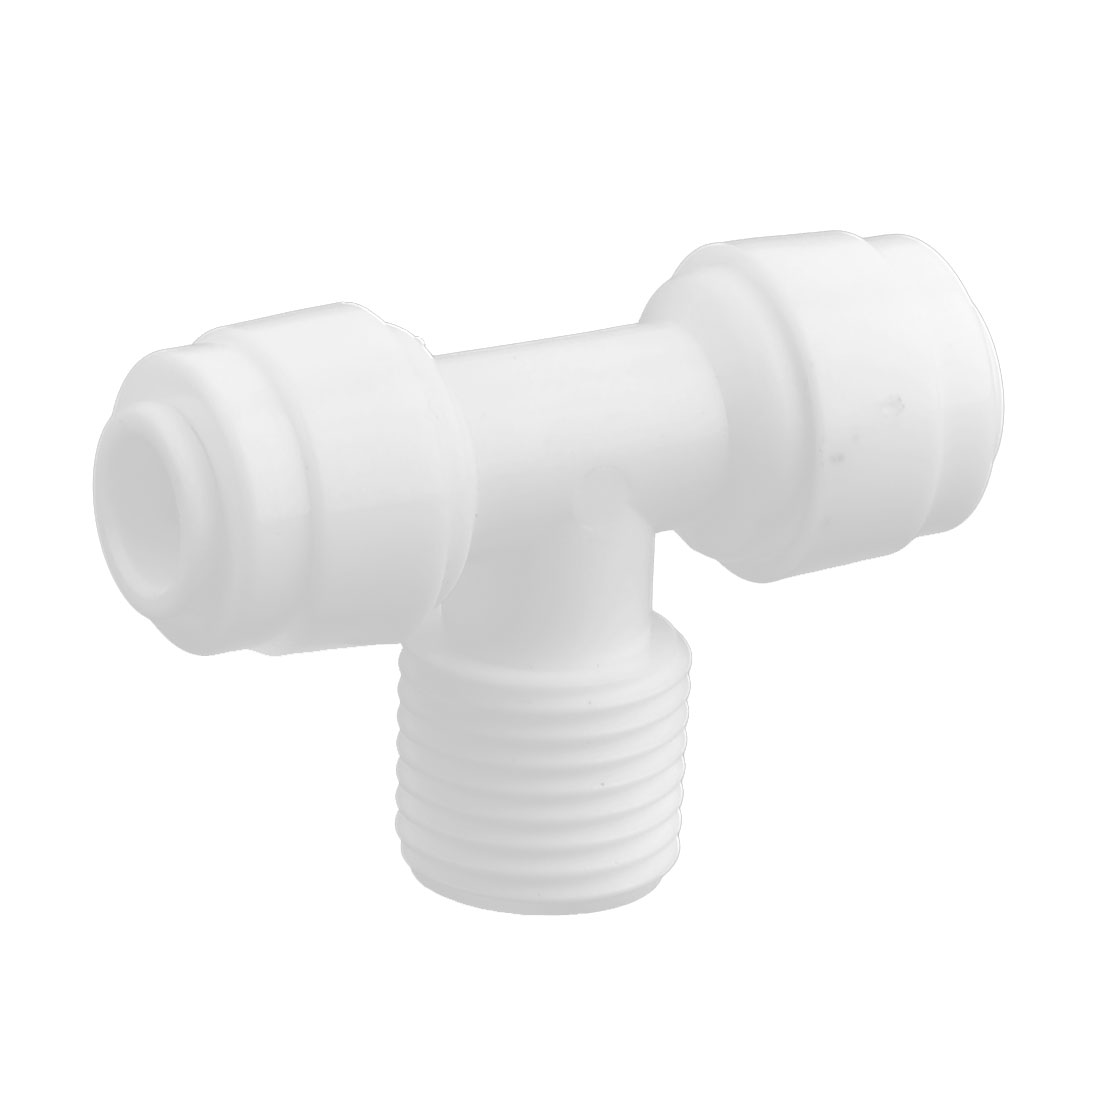 Household Plastic Water Filter Purifier Pipe Quick Joint Connector White - image 3 of 3